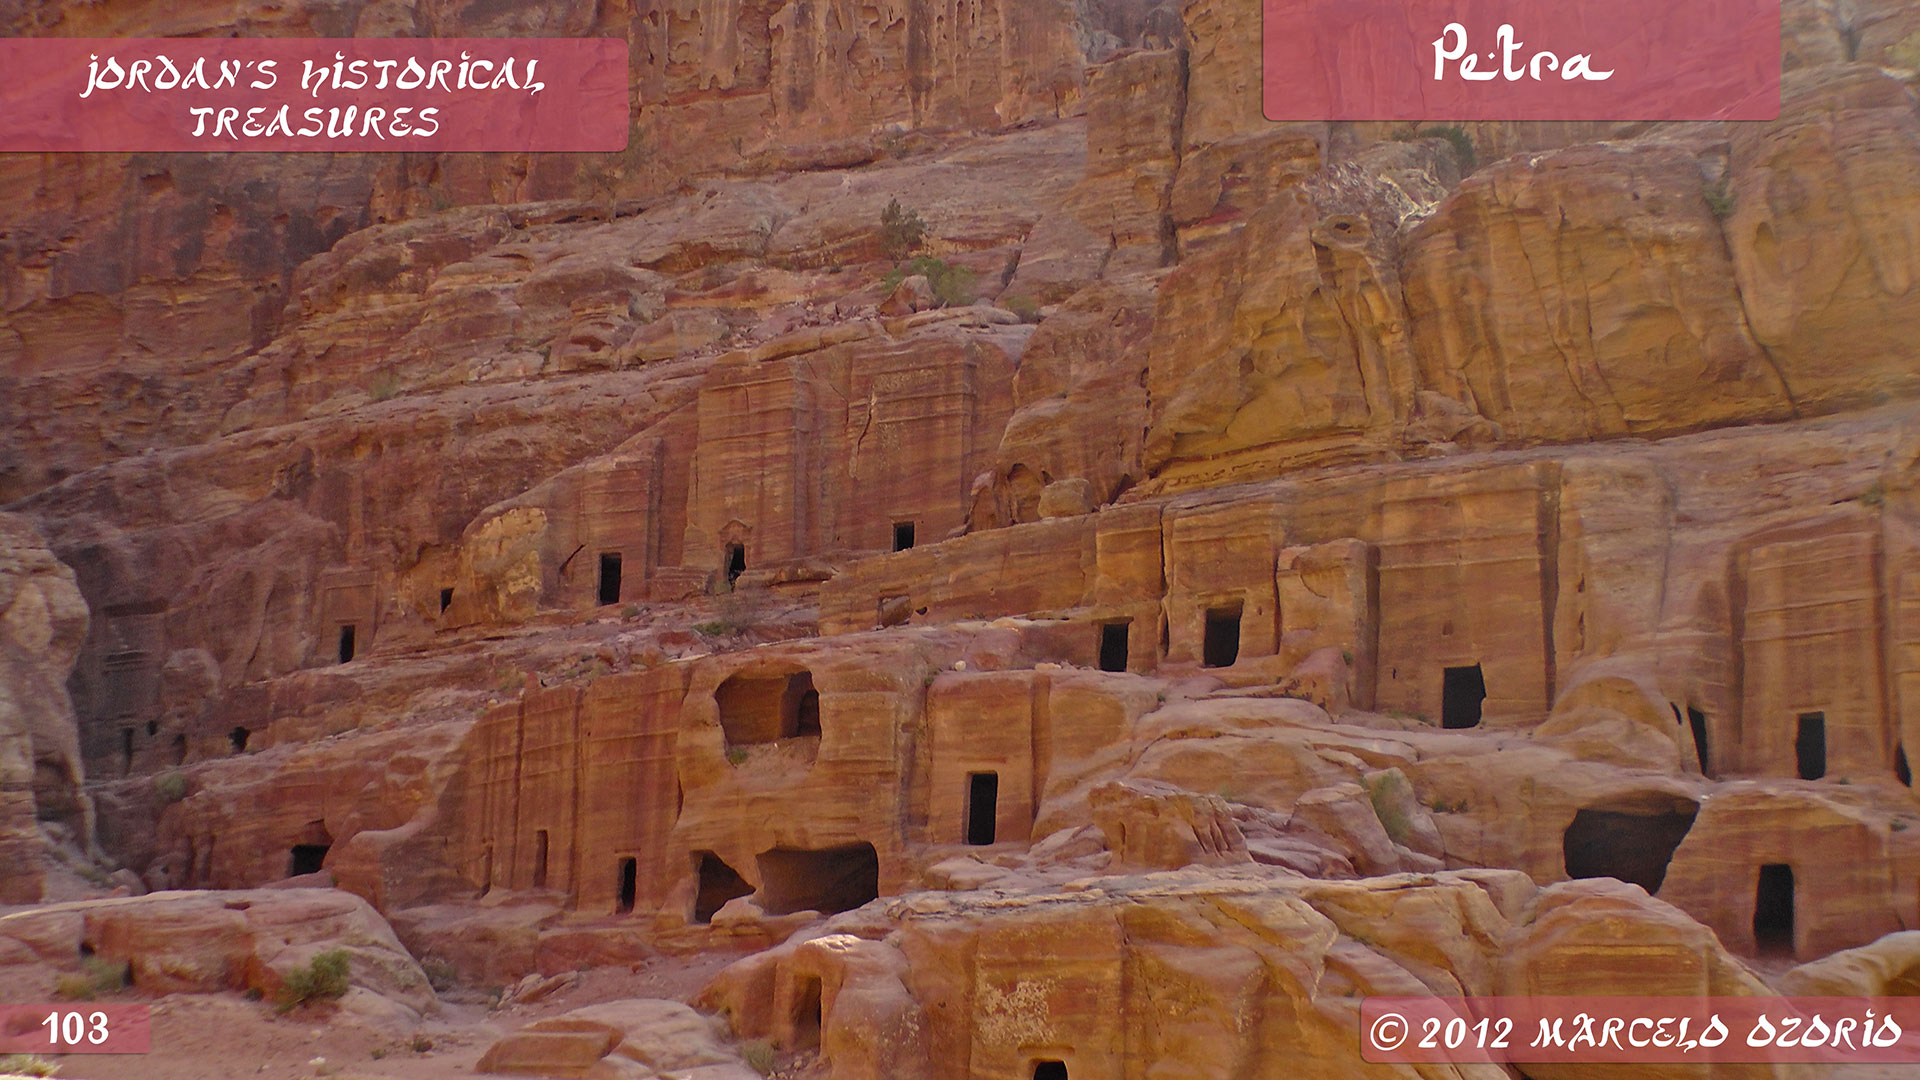 Petra Archaeological City Jordan 23 - The Astonishing Treasure at Petra - Jordan